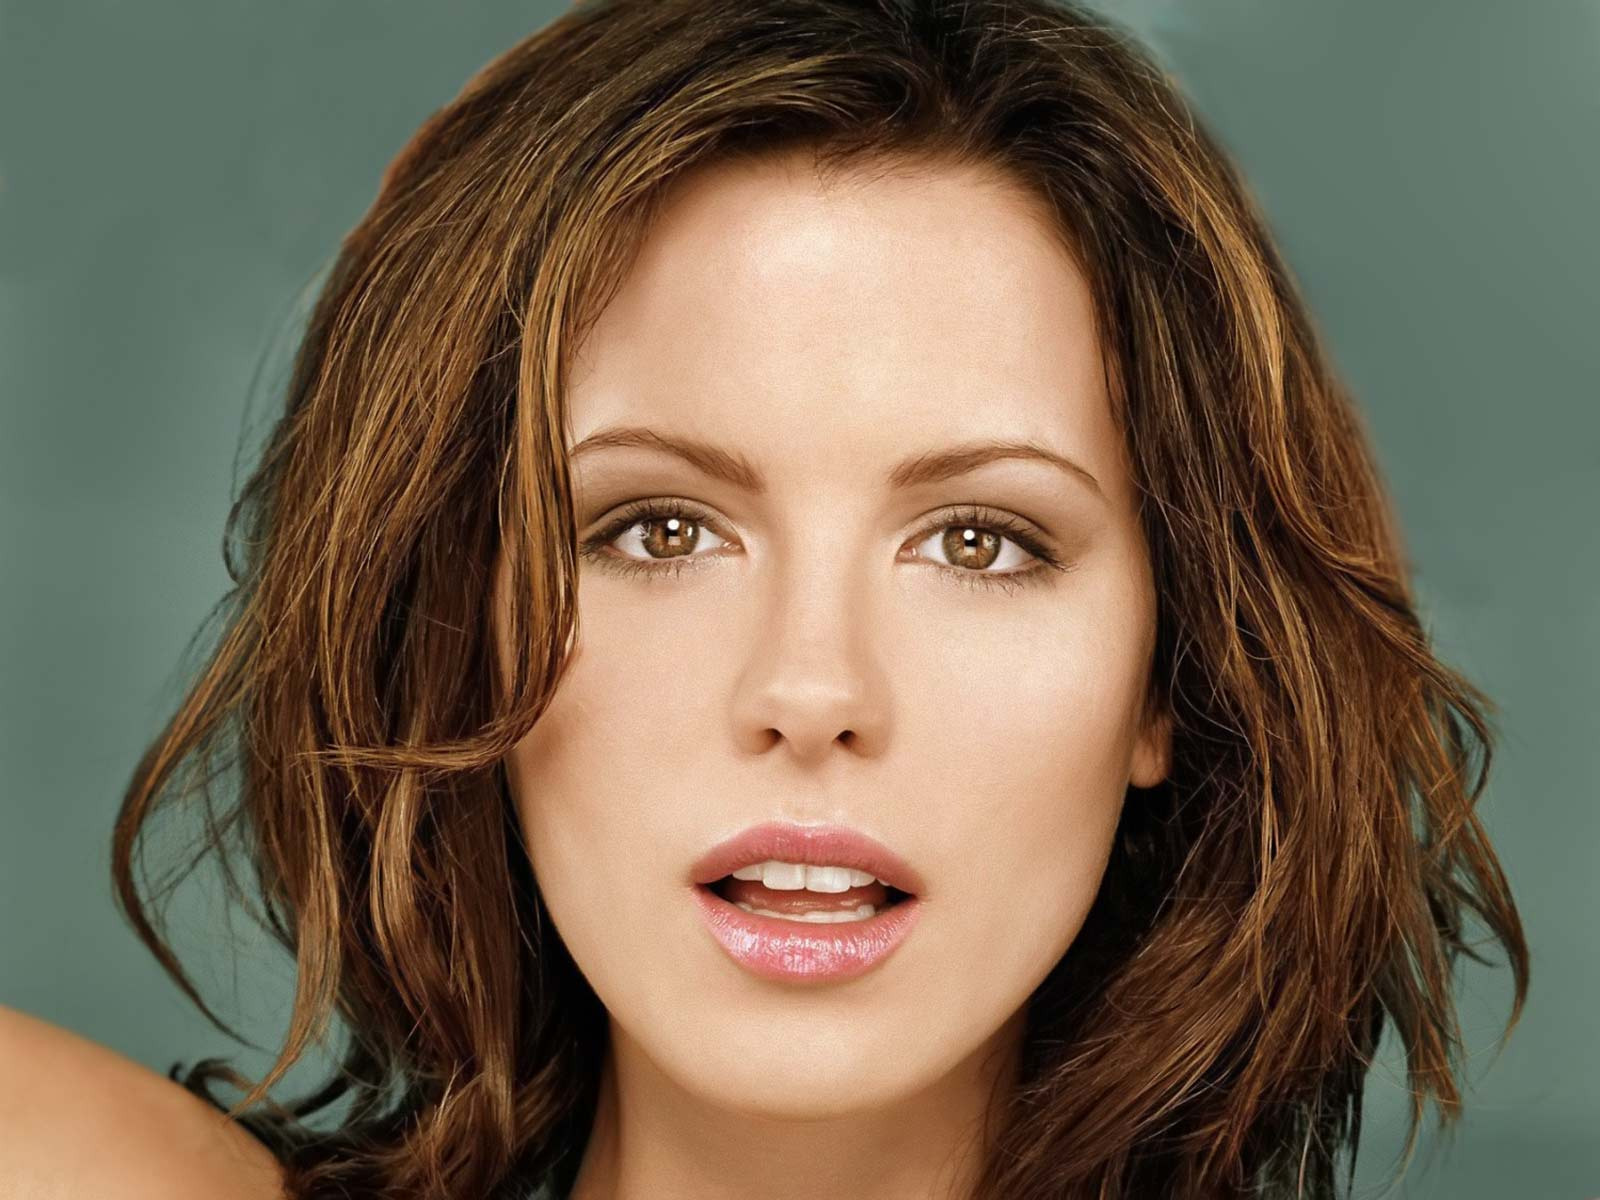 photo Celebrity Hairstyles: Kate Beckinsale Hairstyles